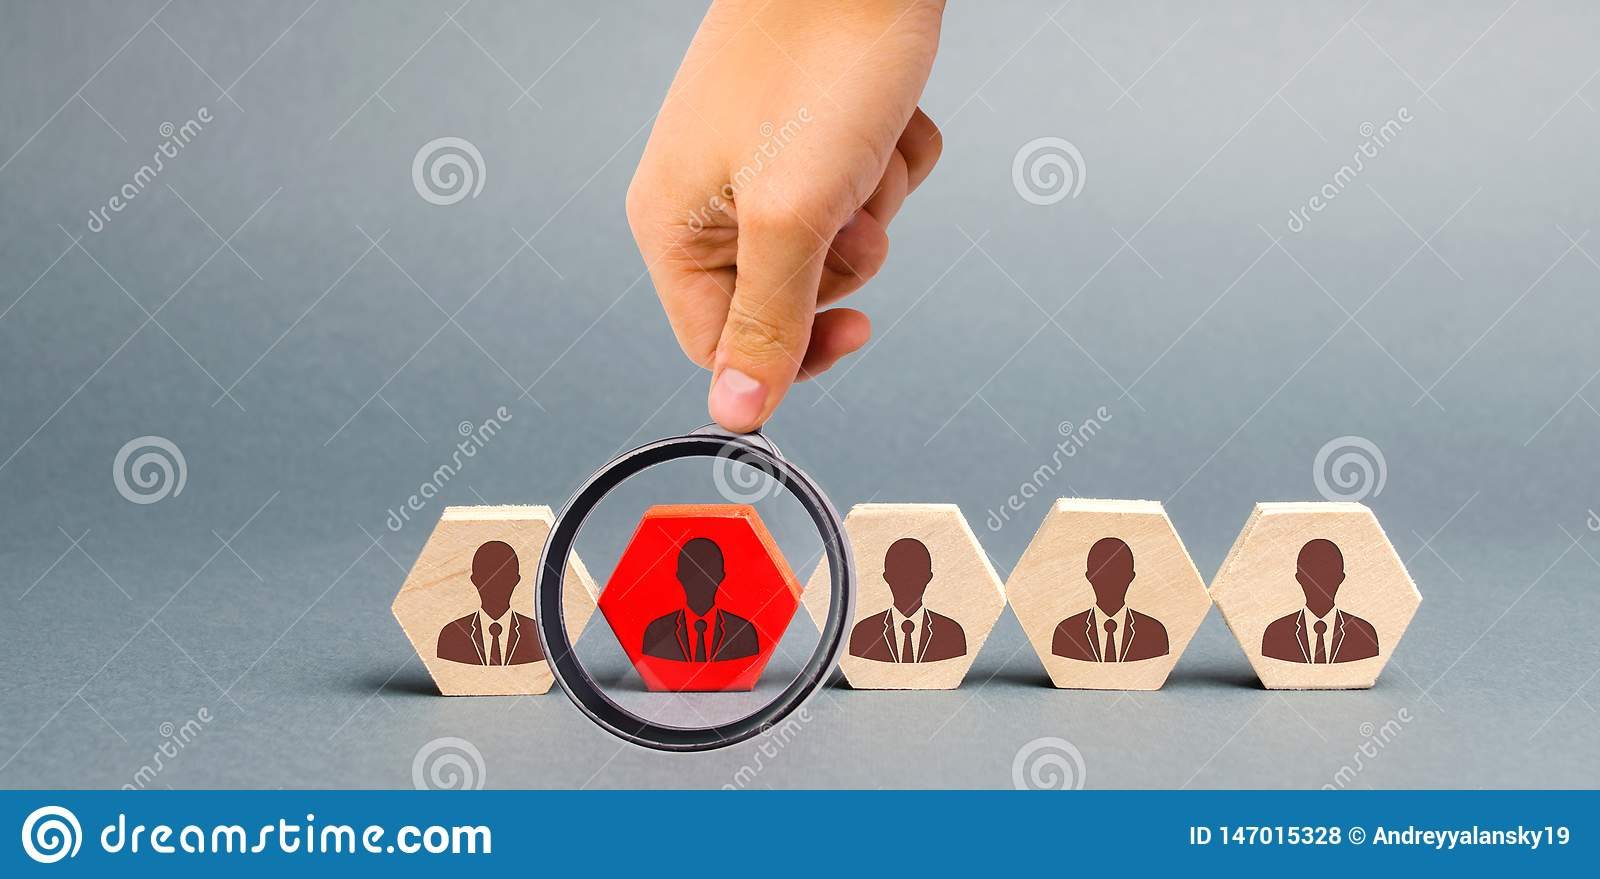 Wooden blocks with the image of workers. The concept of personnel management in the company. Dismissing an employees from a team.